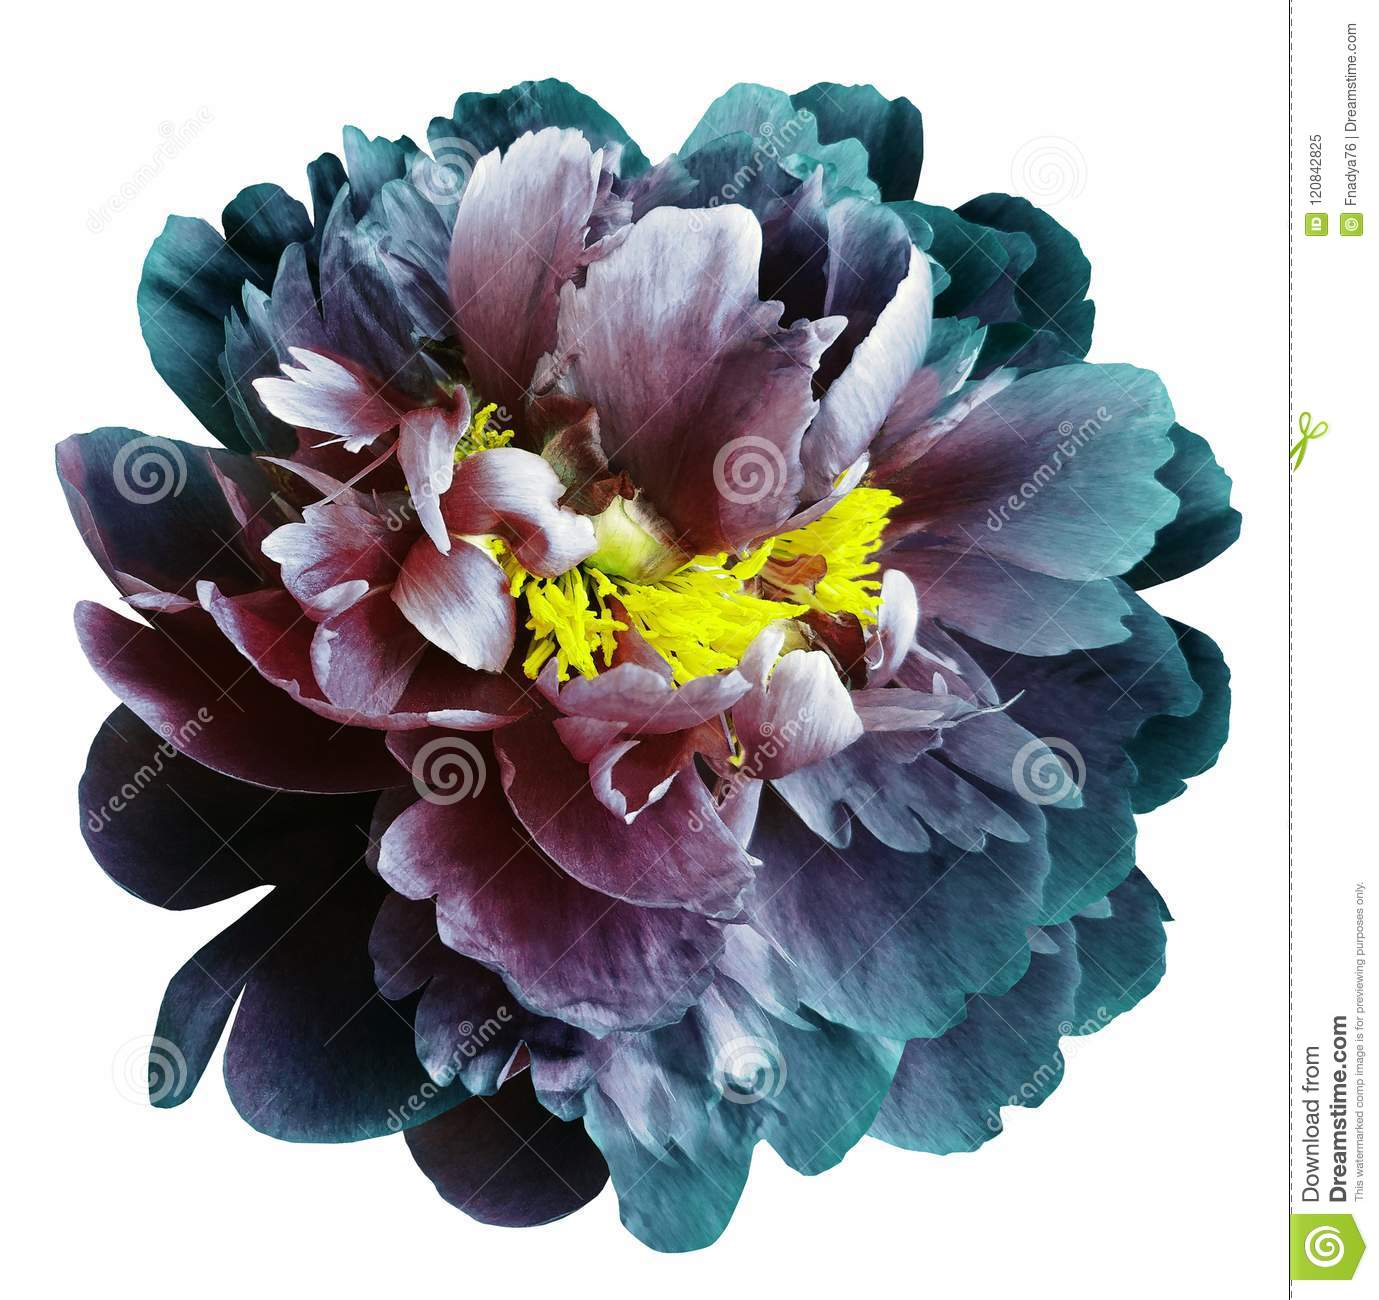 Turquoise-blue-red peony flower with yellow stamens on an isolated white background with clipping path. Closeup no shadows. For